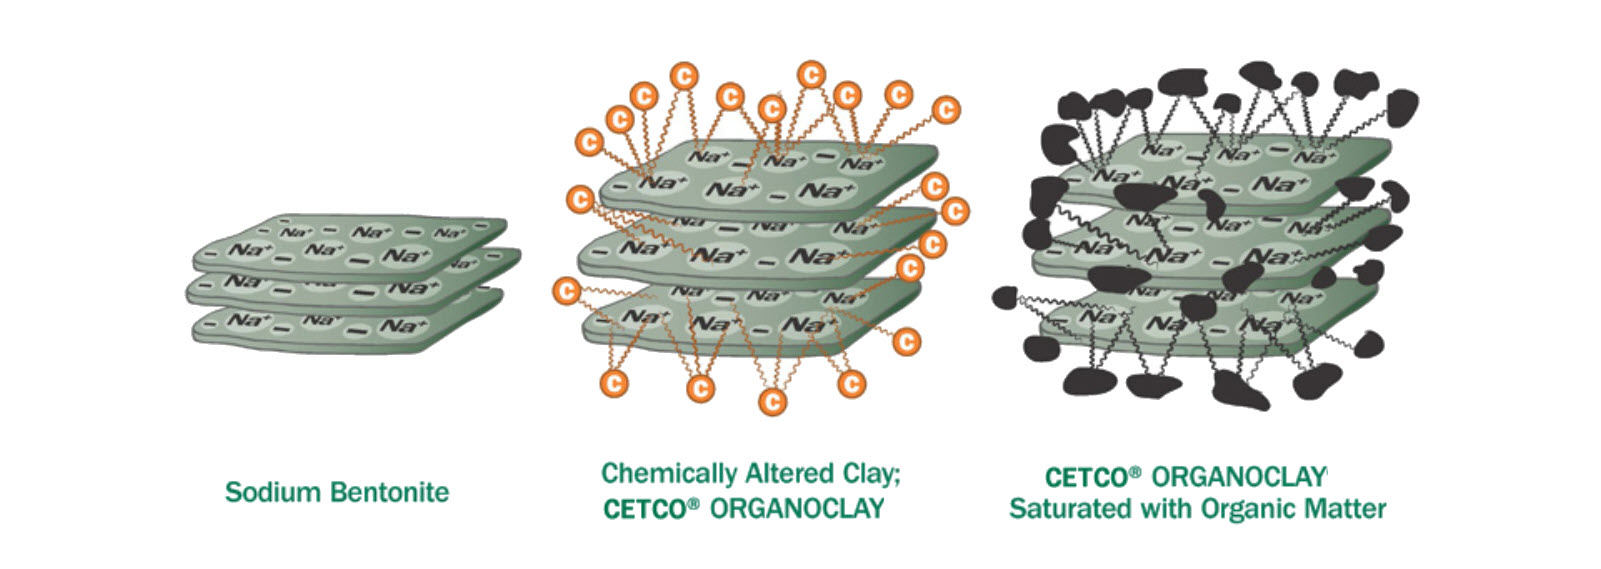 organoclay-saturated-organic-matter-diagram-cetco